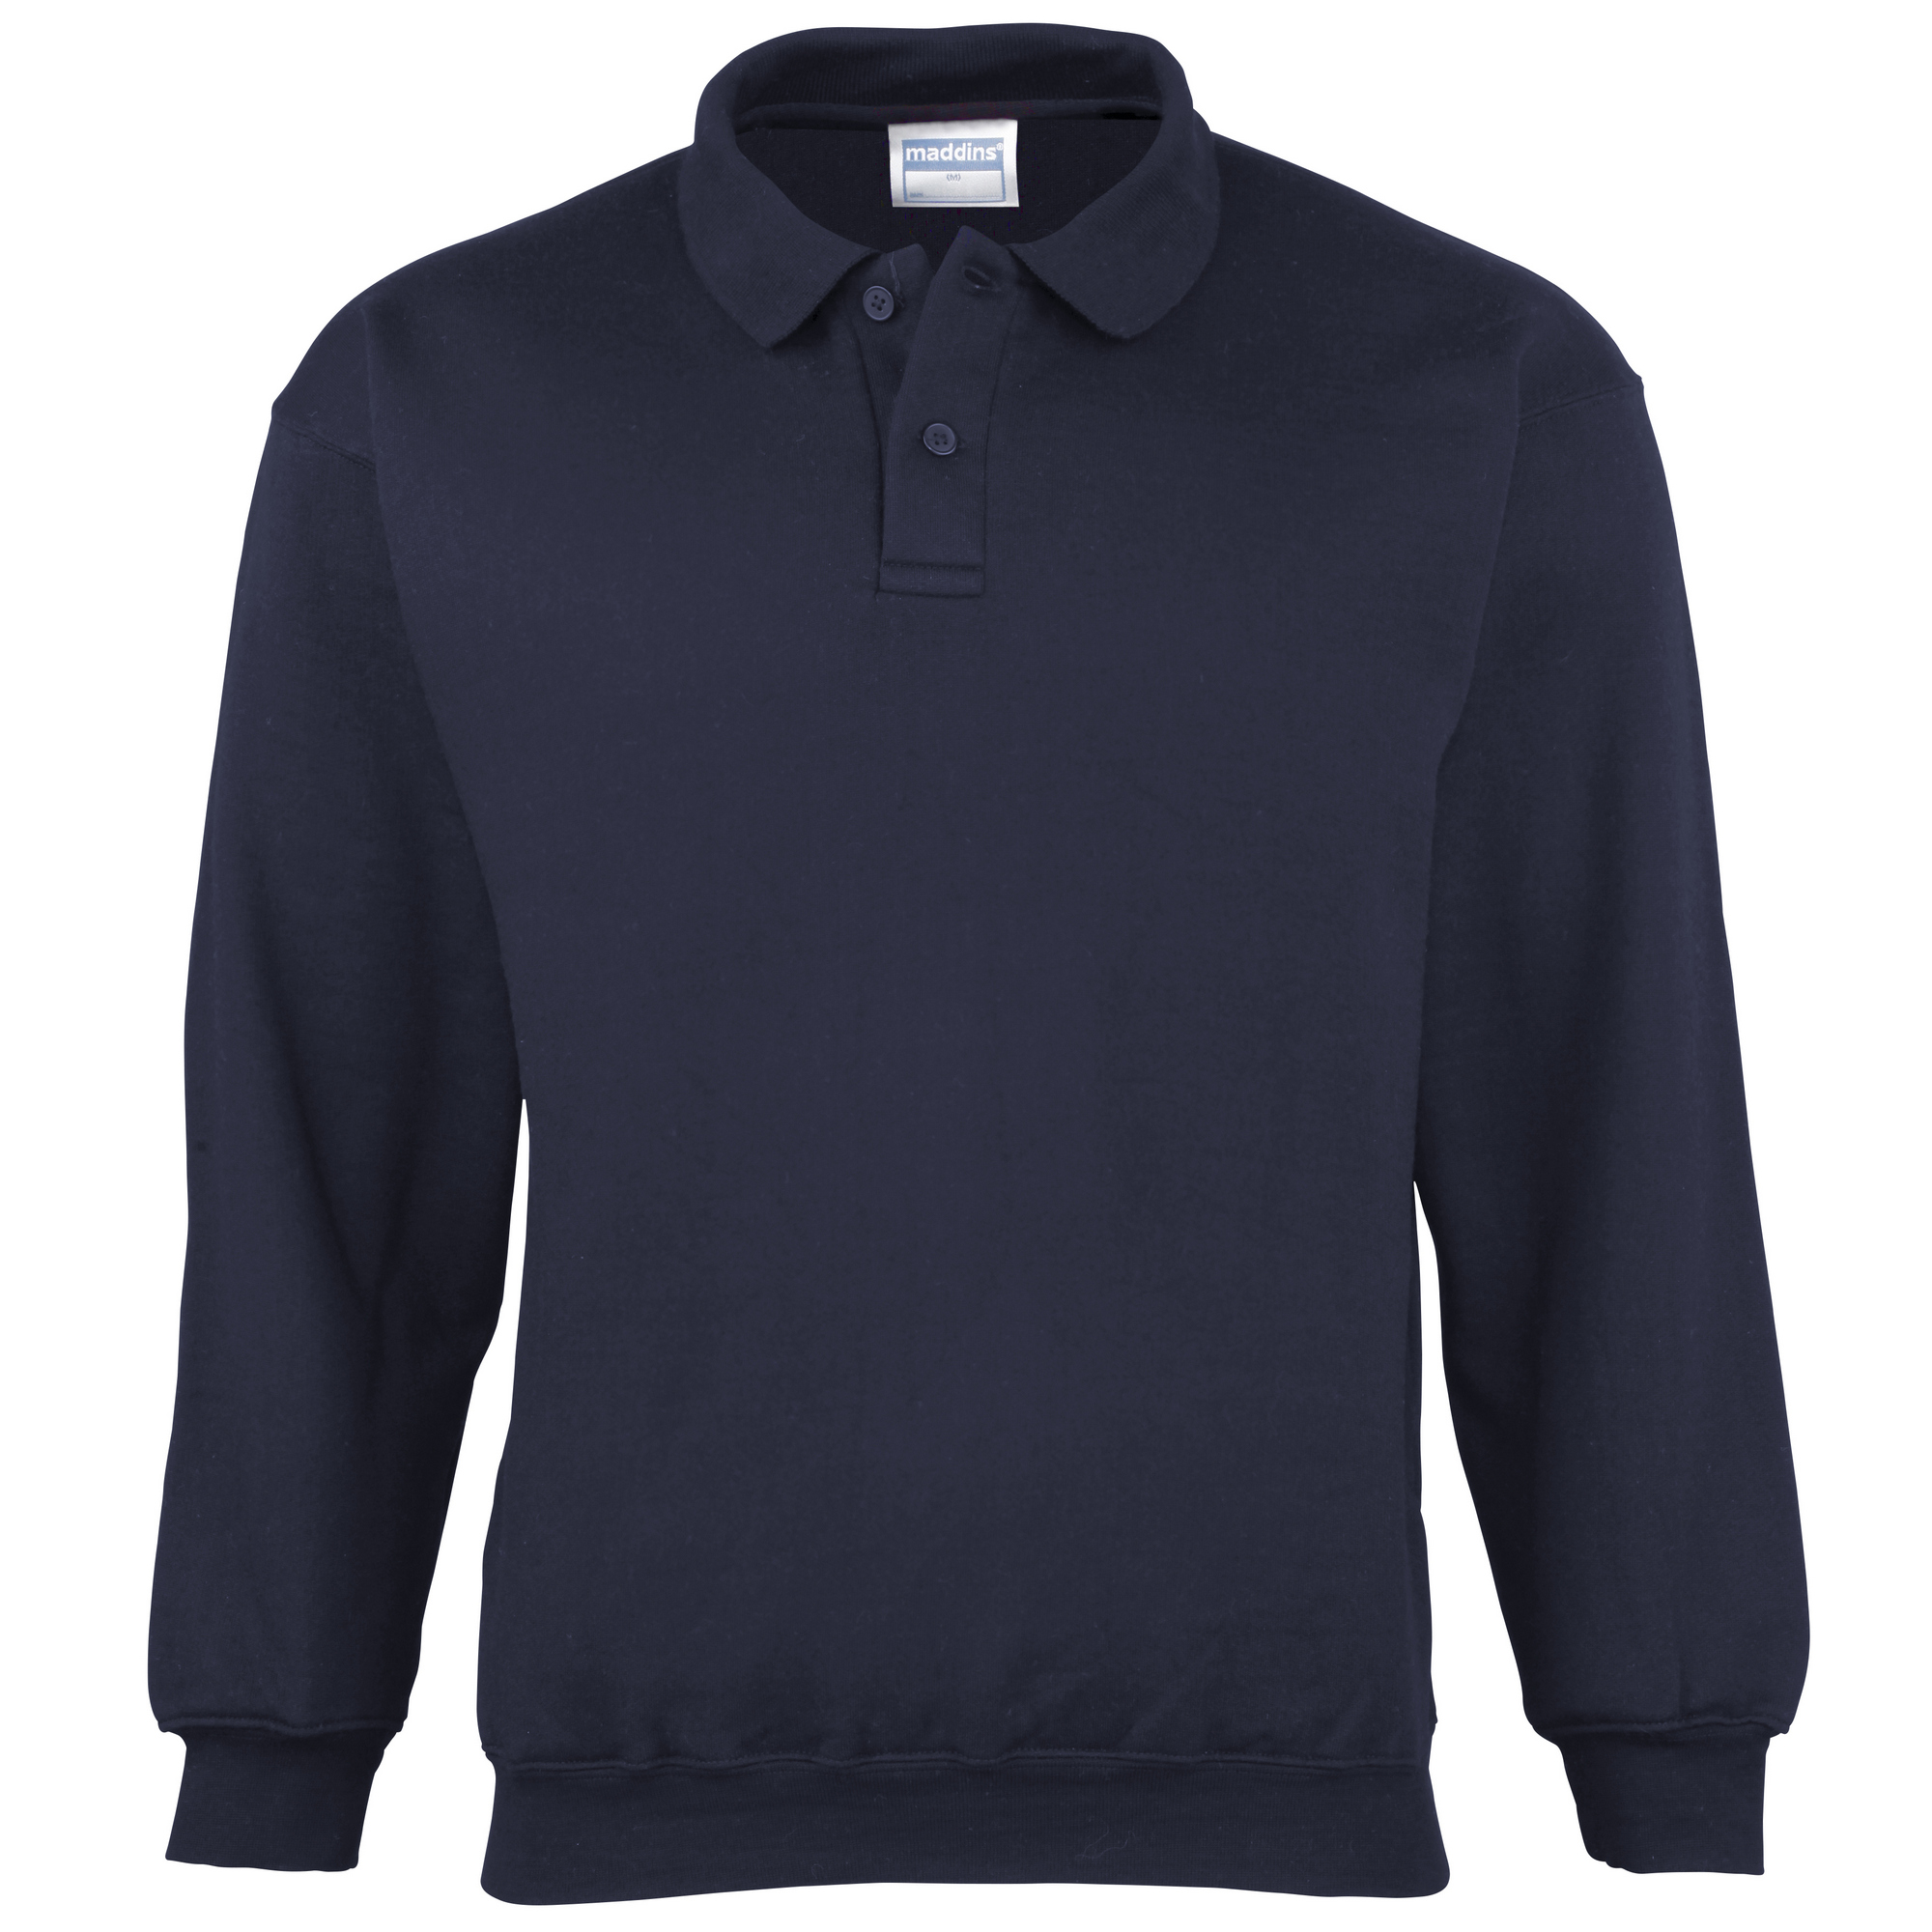 Maddins Mens Coloursure Polo Pisquet Sweatshirt Top (M) (Navy)